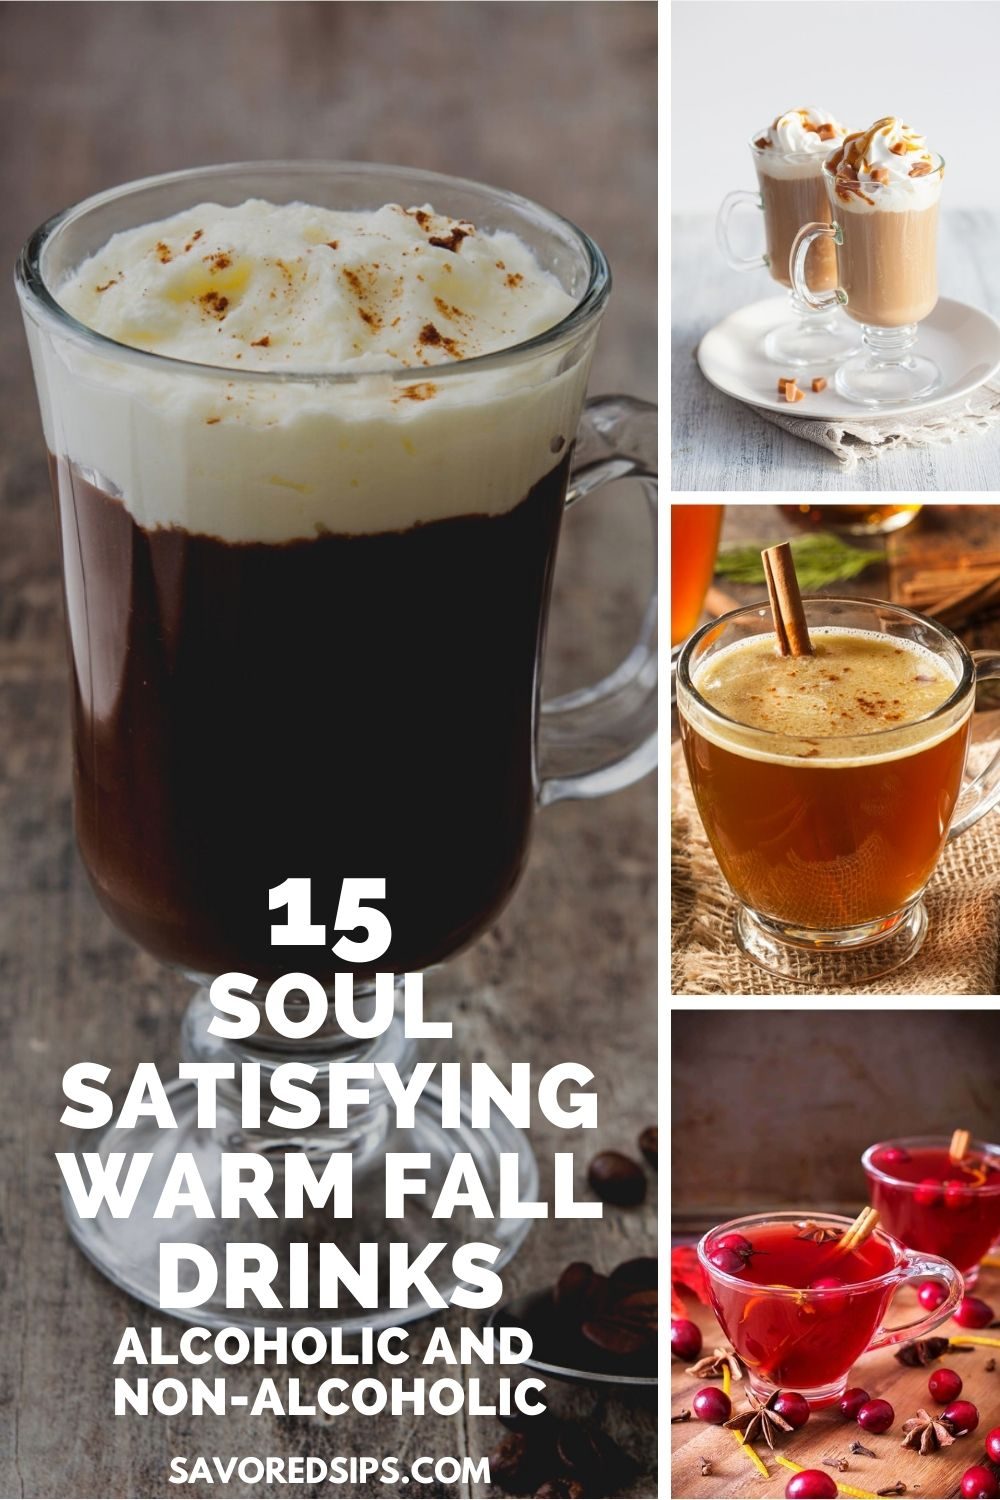 Irish coffee, hot buttered rum, creme brulee latte and wassail